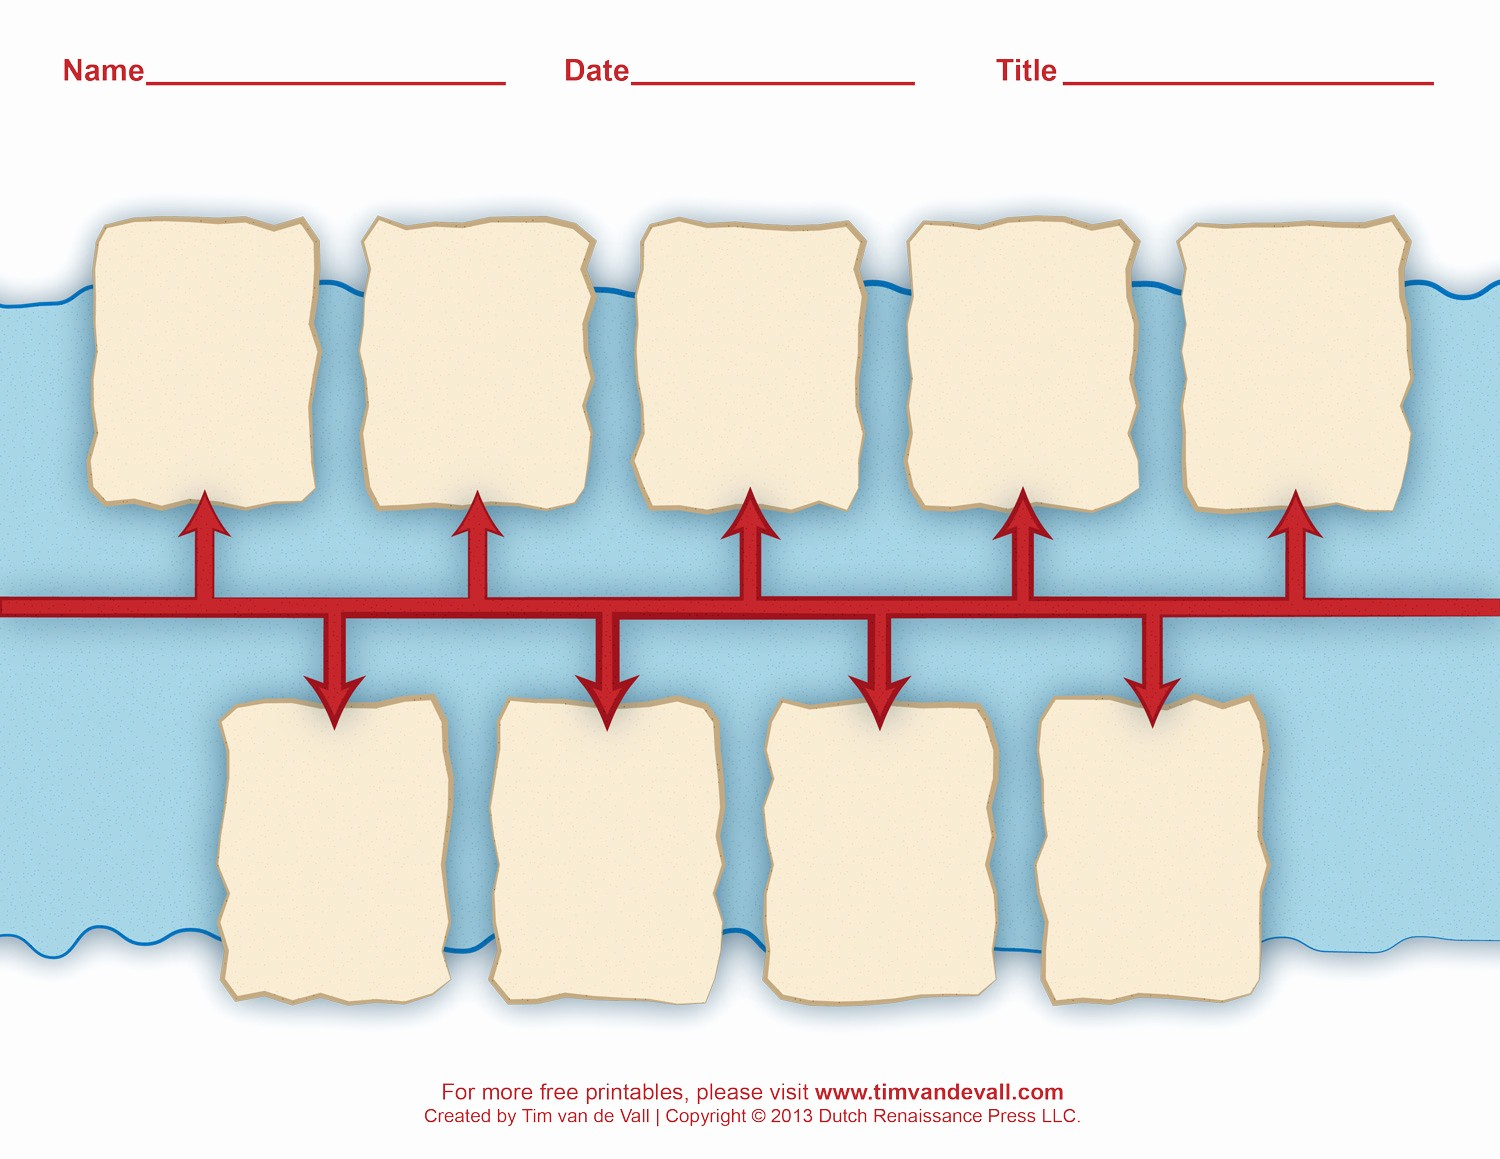 Blank Timeline Template 10 events Best Of Printable History Timeline Worksheets for Classrooms